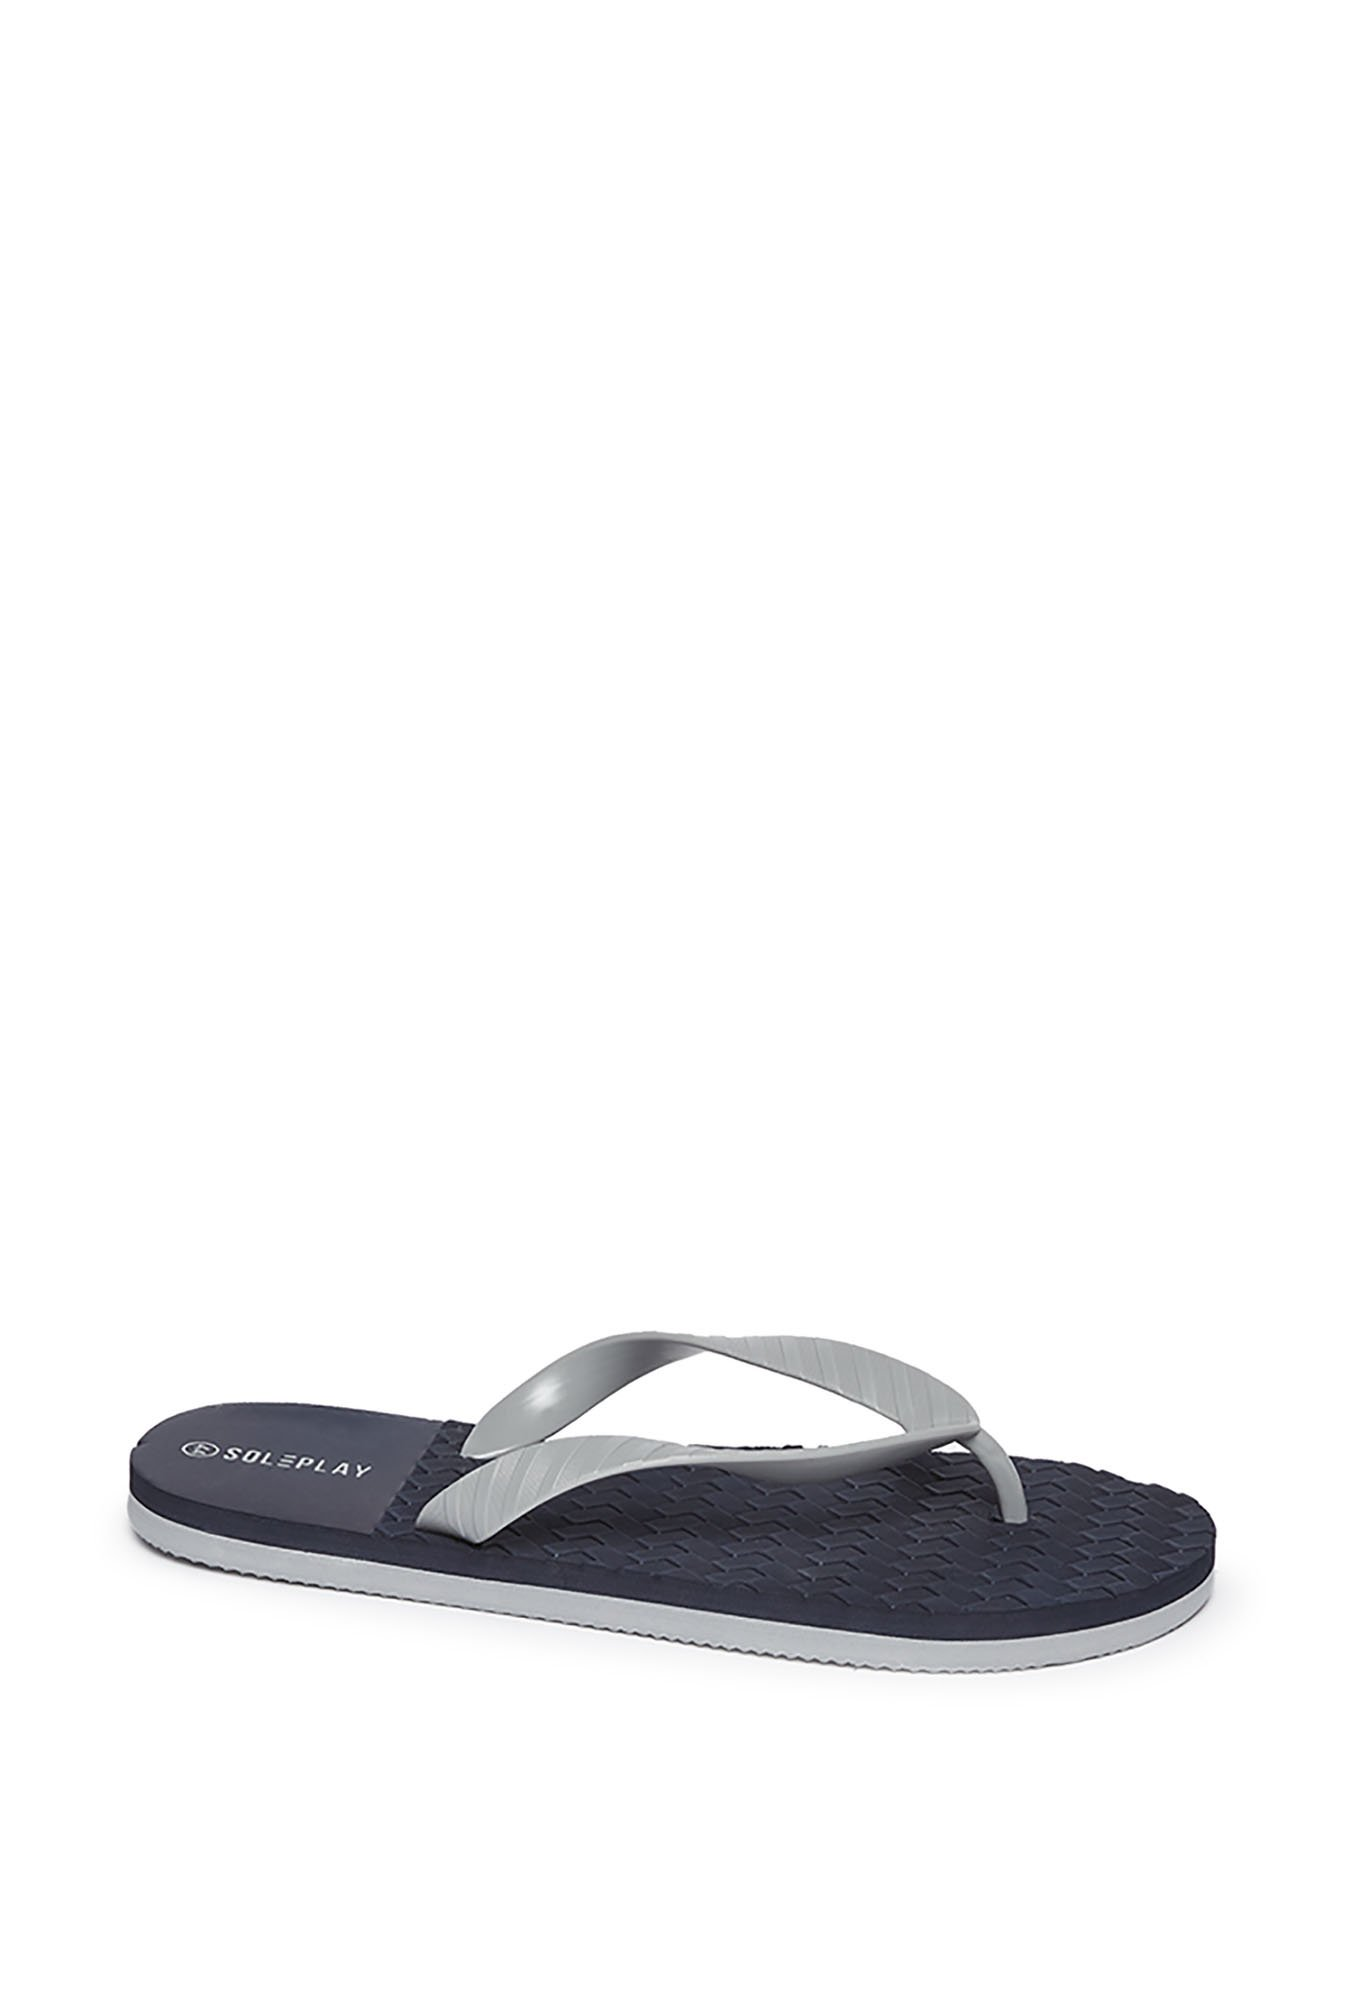 6246ab9aade Buy SOLEPLAY by Westside Navy Textured Flip-Flops For Men Online ...